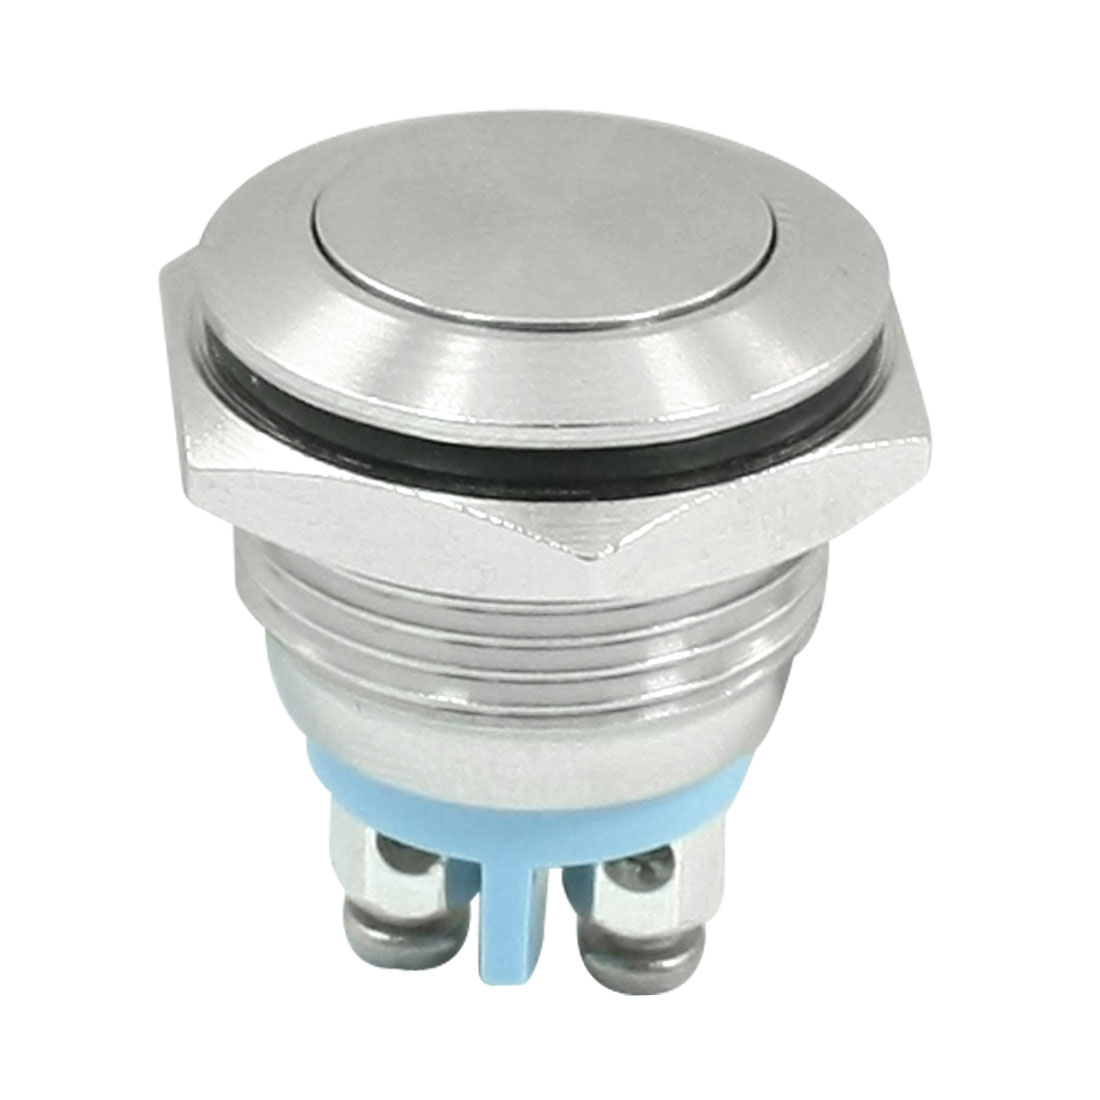 16mm Panel Cutout SPST Momentary Stainless Steel Push Button Switch